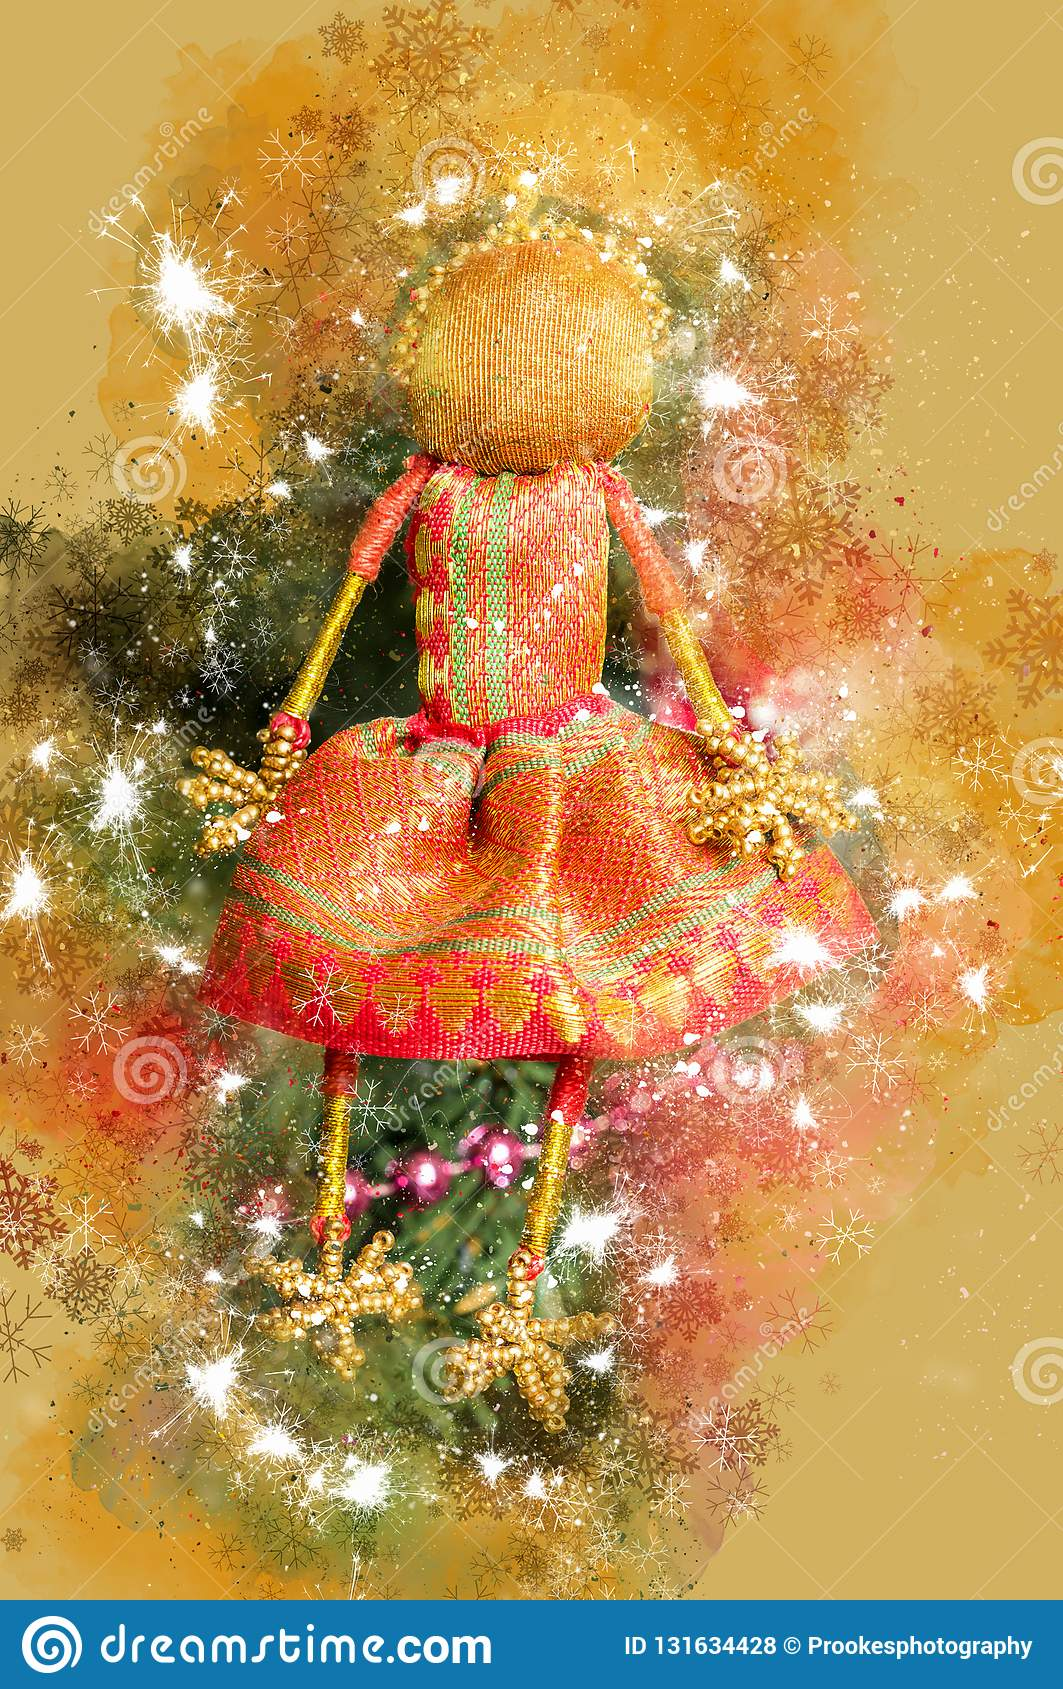 Christmas In England Traditions.Digital Christmas Watercolour Photograph Combined